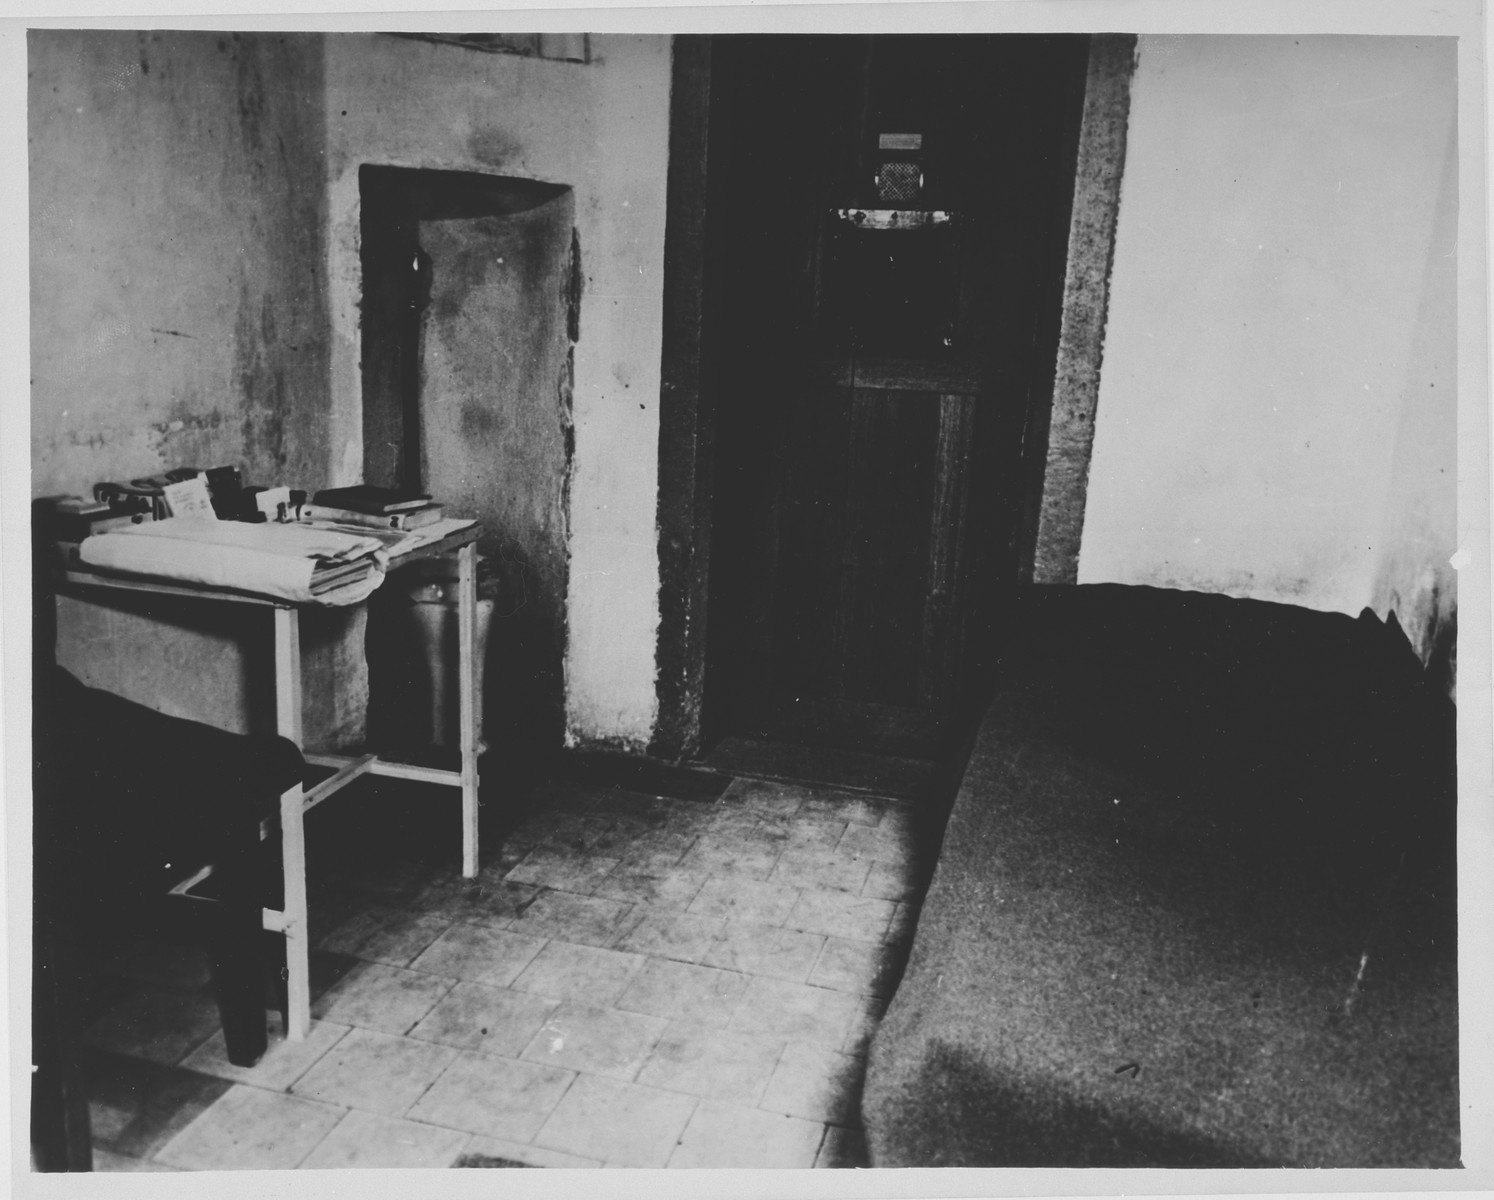 A typical jail cell in the Palace of Justice Prison, where the defendants were confined during the International Military Tribunal trial of war criminals at Nuremberg.  IMT defendant Robert Ley hanged himself on the piece of pipe extending from the toilet